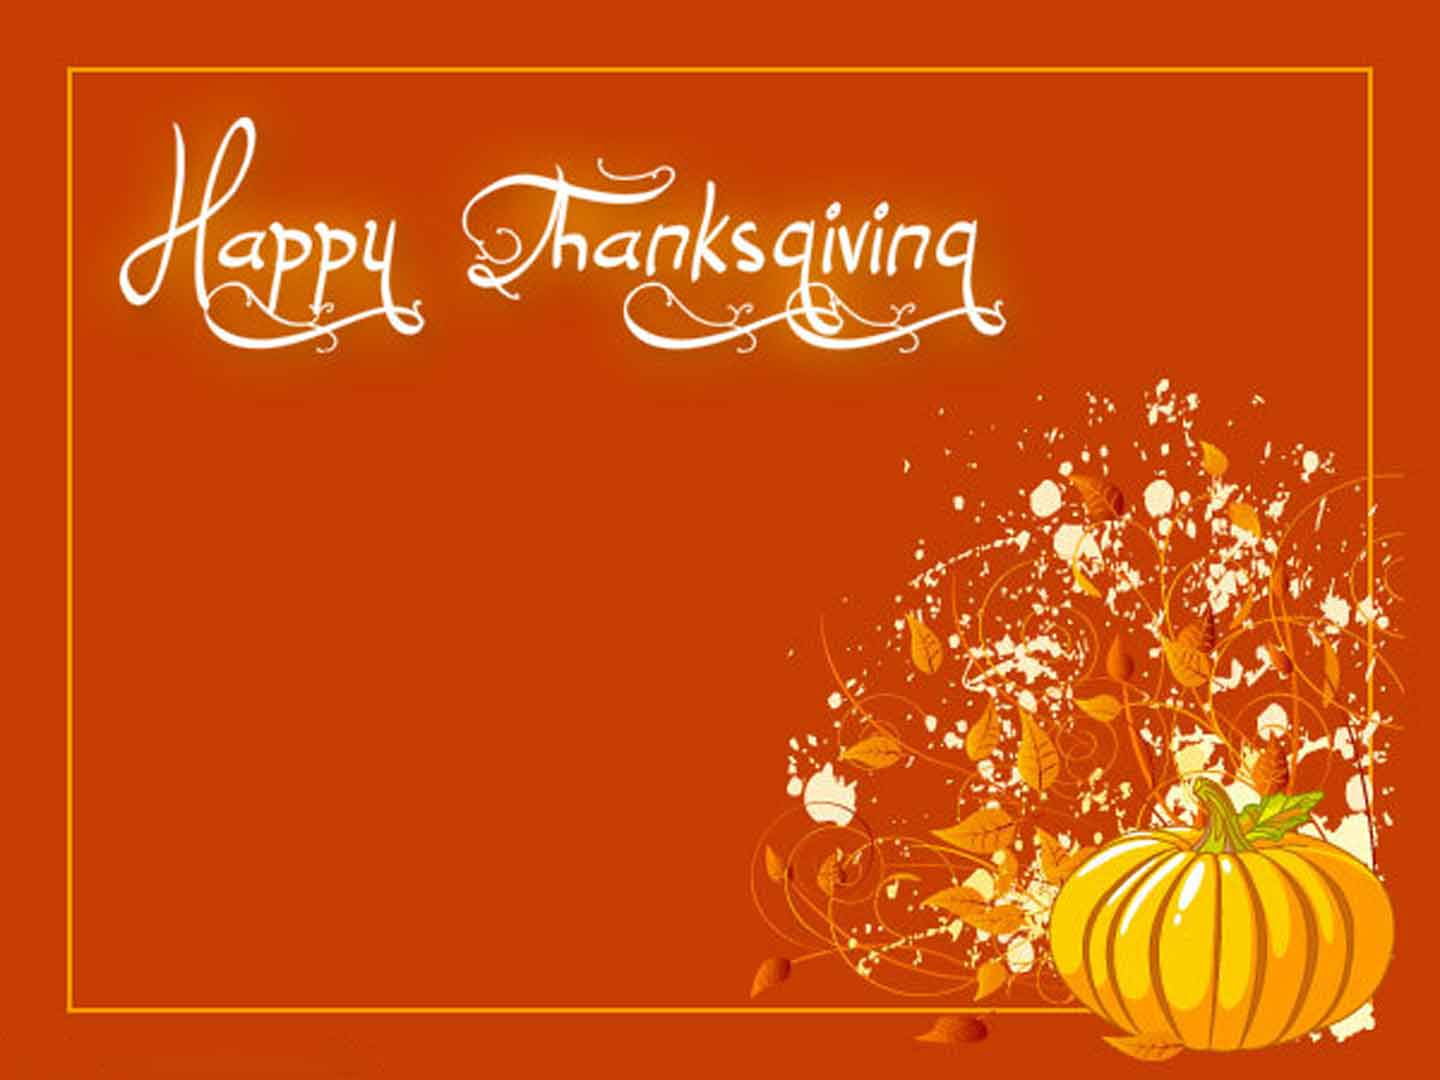 Free hd thanksgiving wallpaper - SF Wallpaper